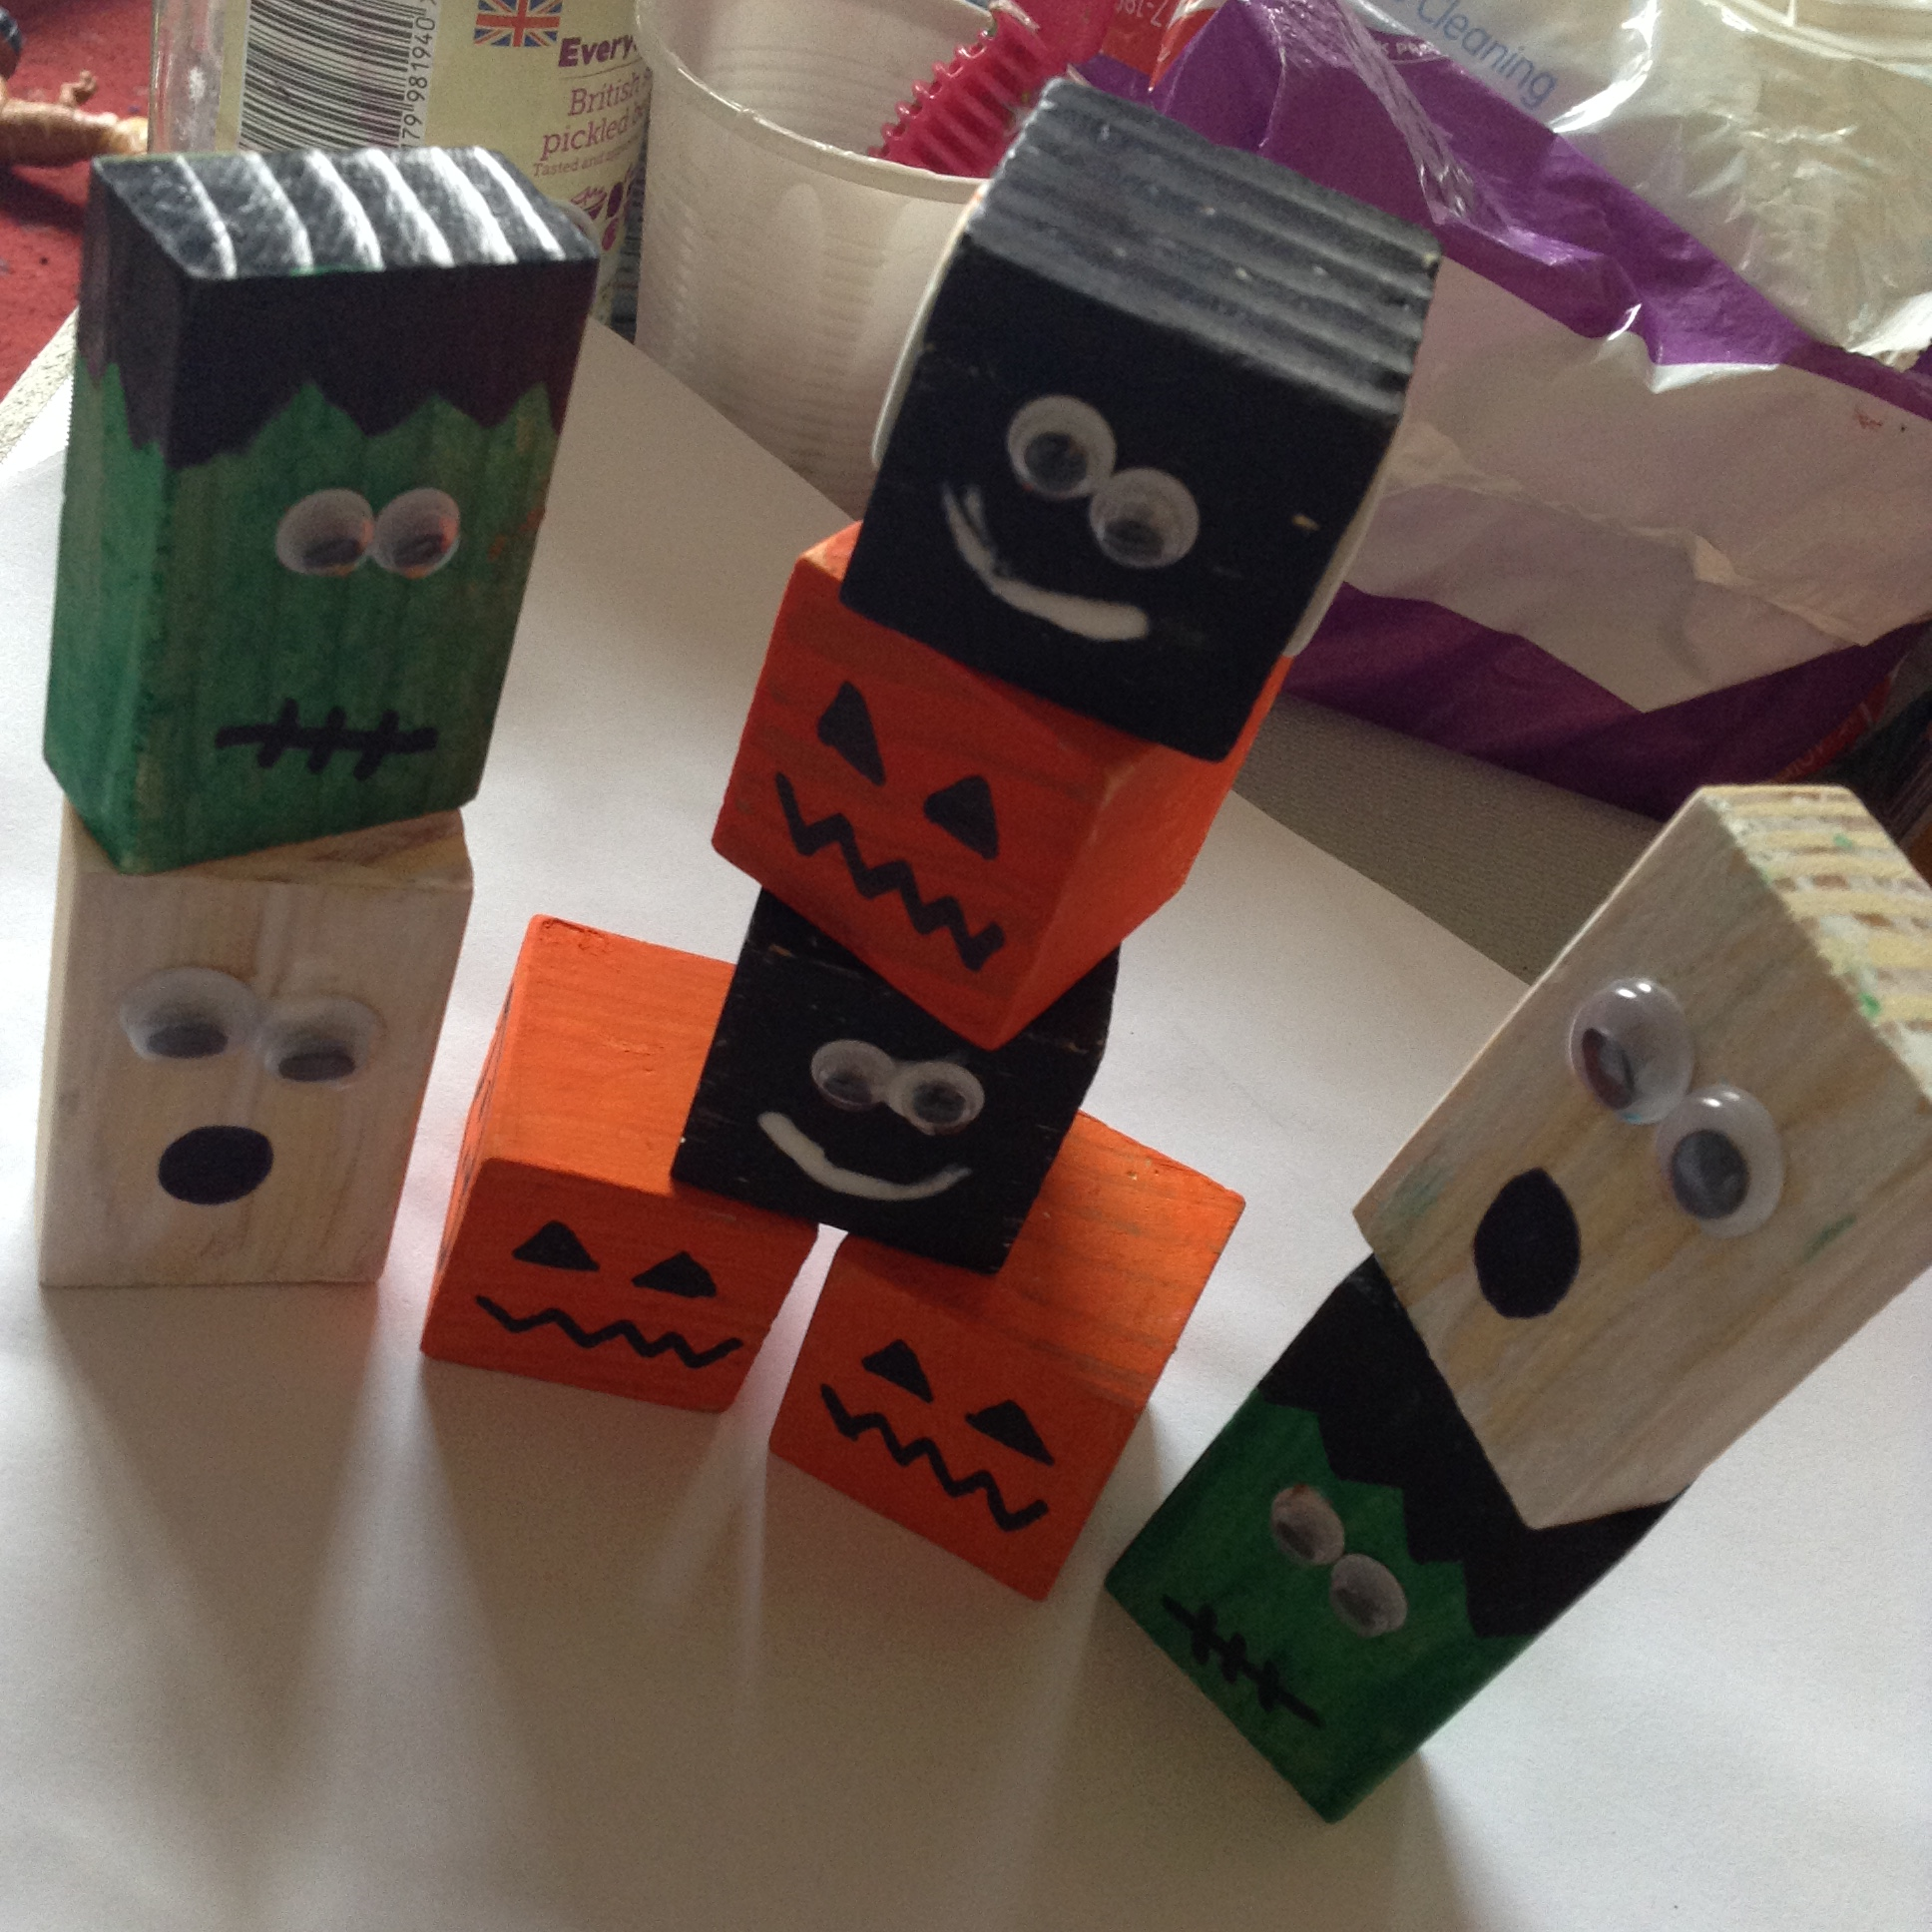 Halloween wooden blocks fun family crafts for Plain wooden blocks for crafts